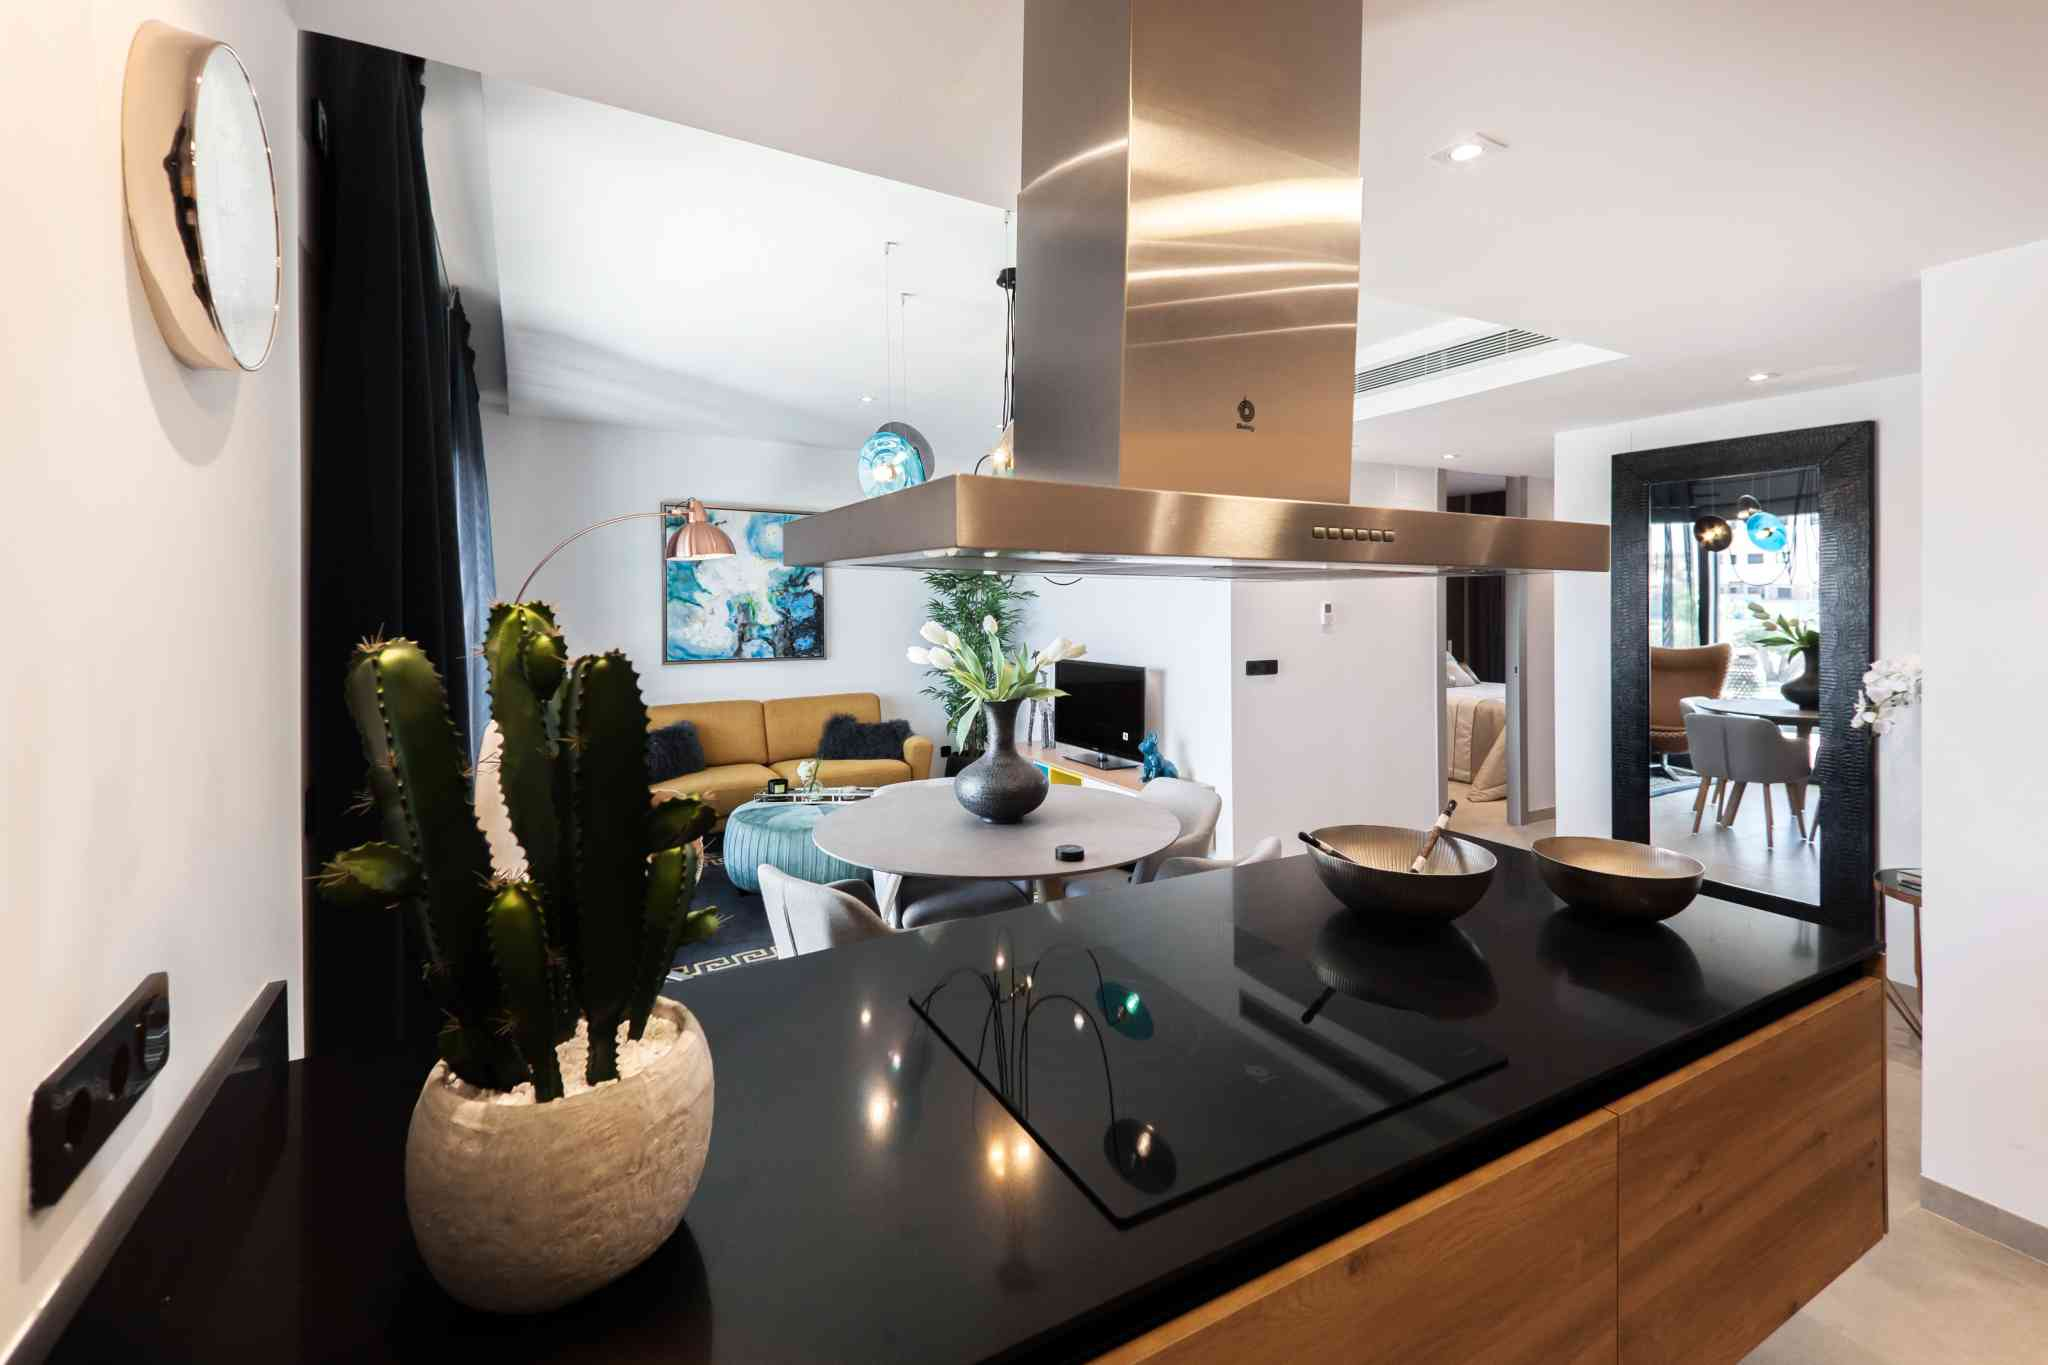 5 kitchen remodeling trends to expect in 2019